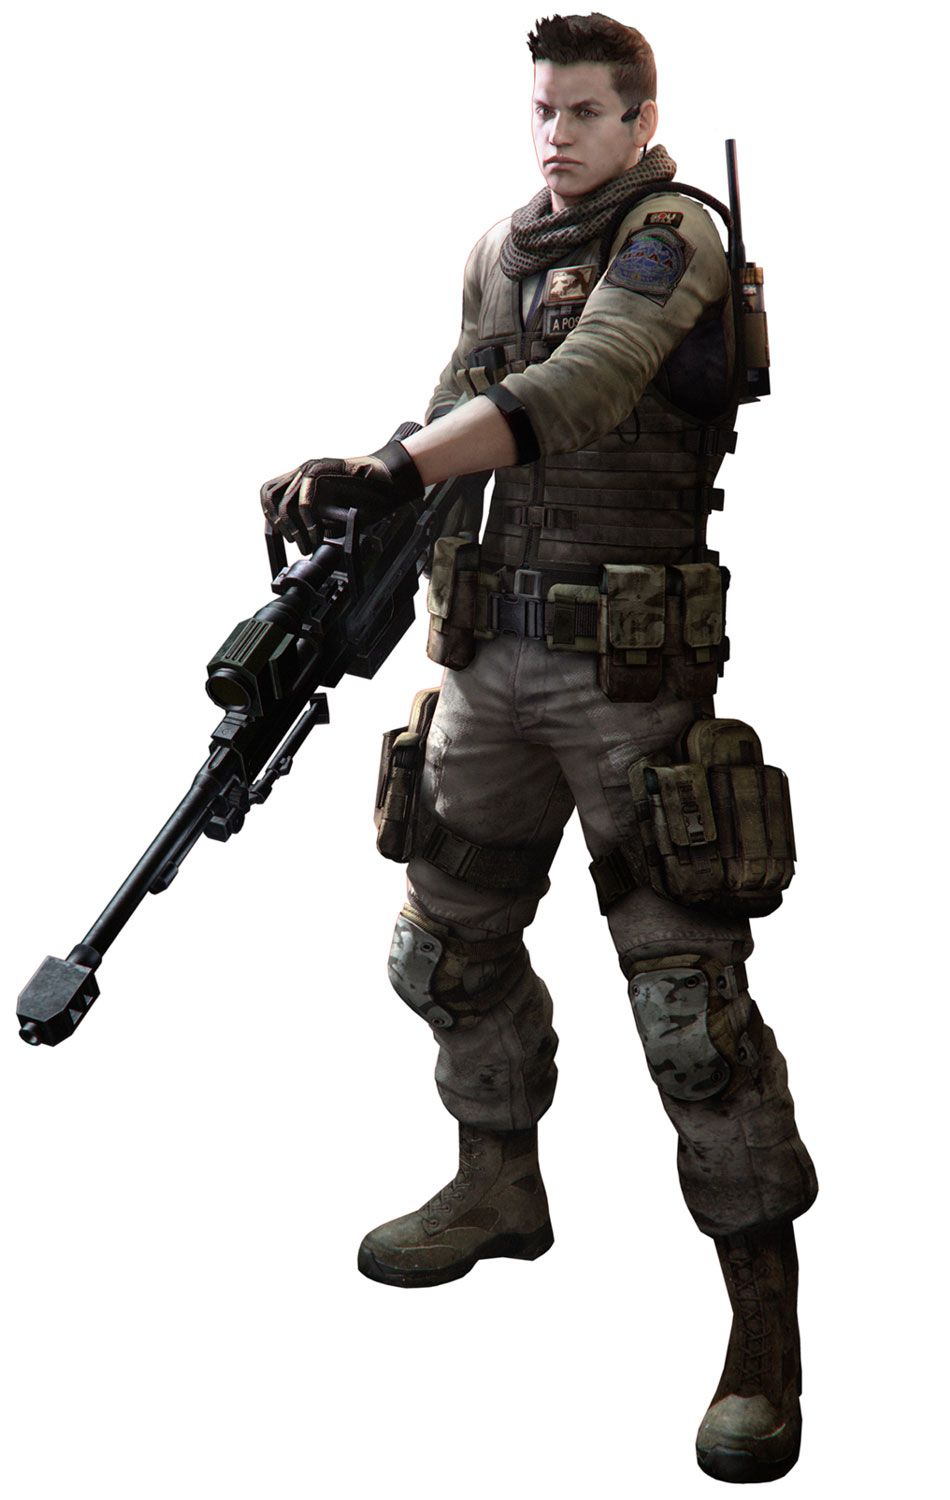 Piers Characters Art Resident Evil 6 Resident Evil Anime Resident Evil Resident Evil Leon